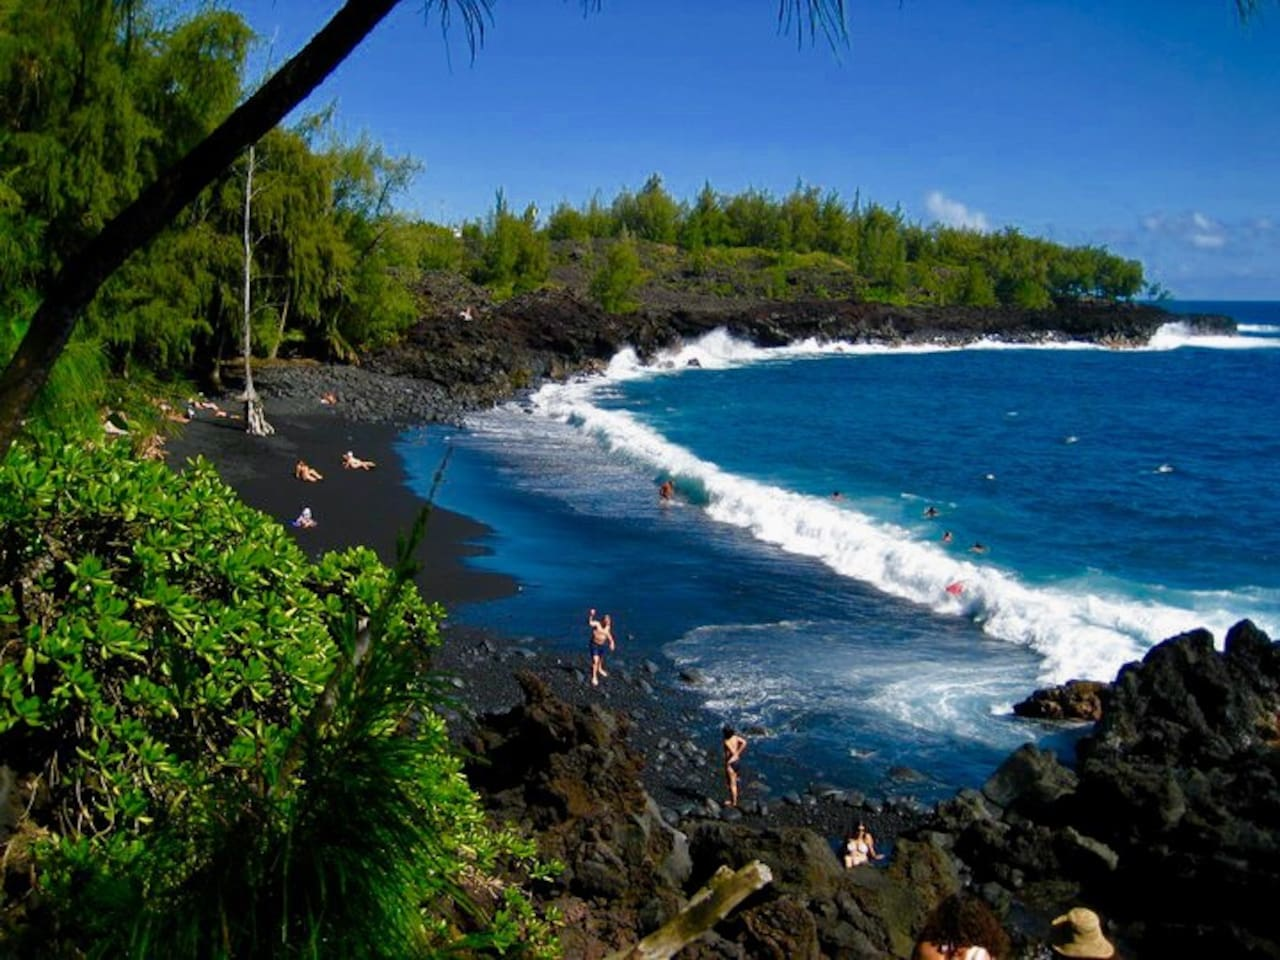 Welcome to Da BIG island of HAWAIIs Be loved southeast Corner johnny  Makalani Orchid Farm Retreat it is surrounded by lush heavily laden mango Forests with  Coconuts and 50 ft avocado Trees Enjoy the Nearby Secluded Black sand keheana Nudist Beach